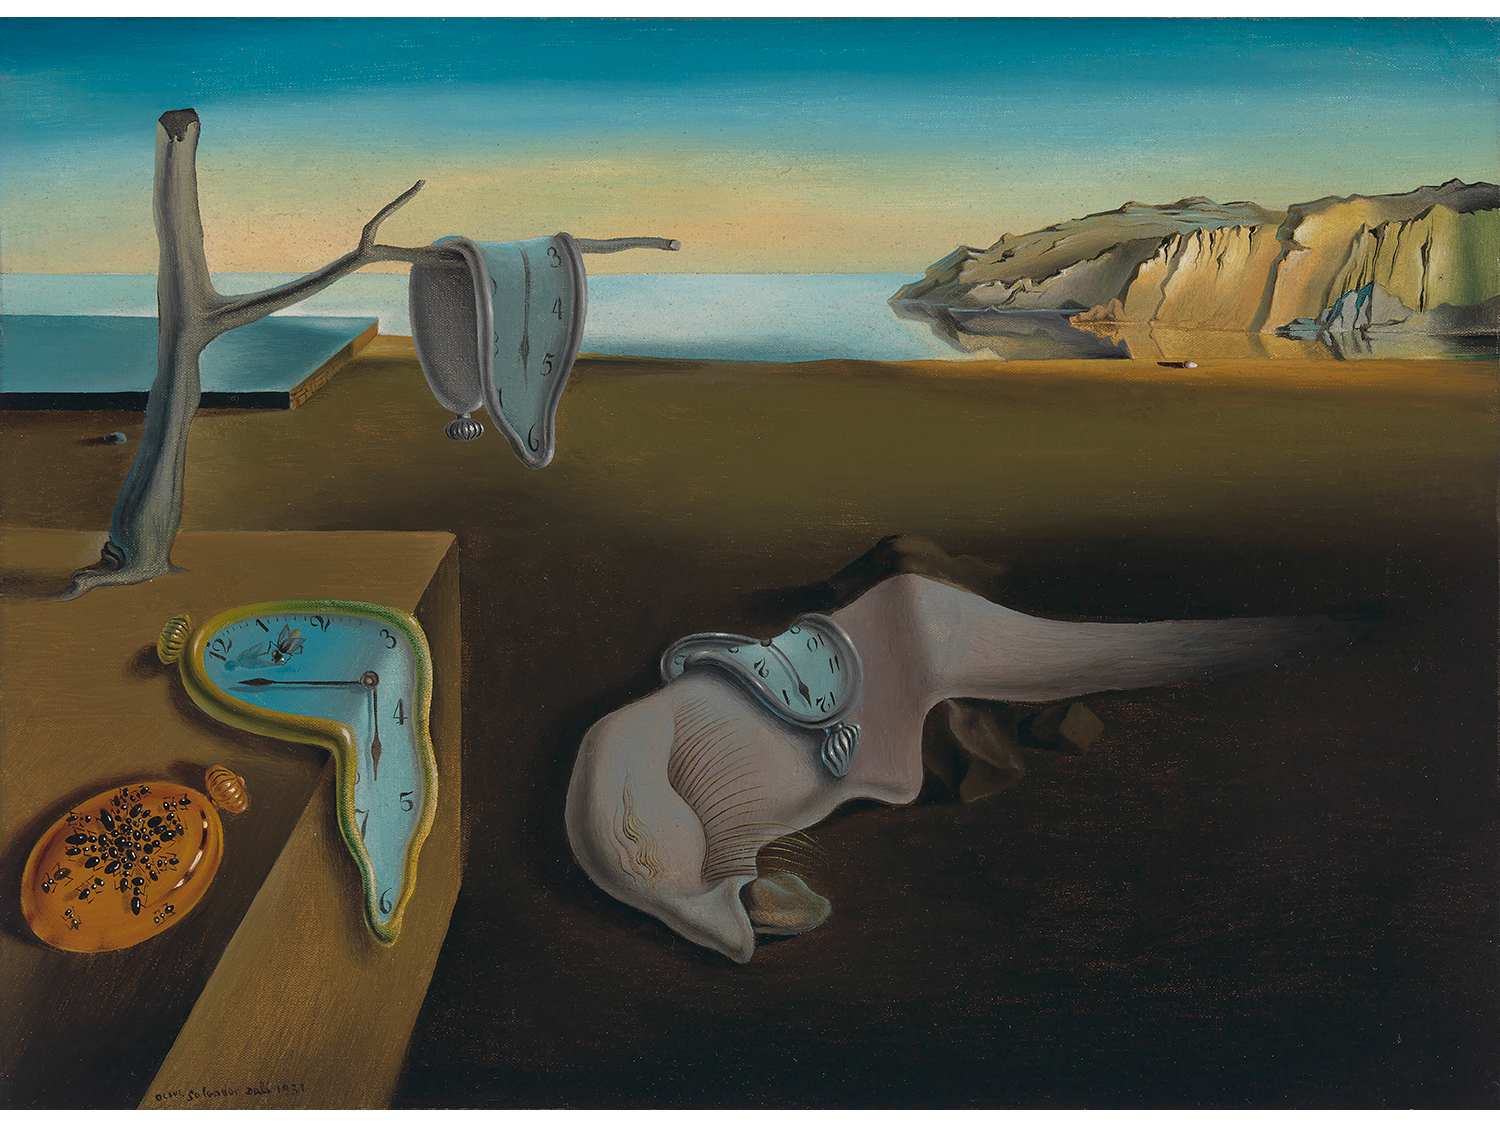 Salvador Dalì, The Persistence of Memory (1931)